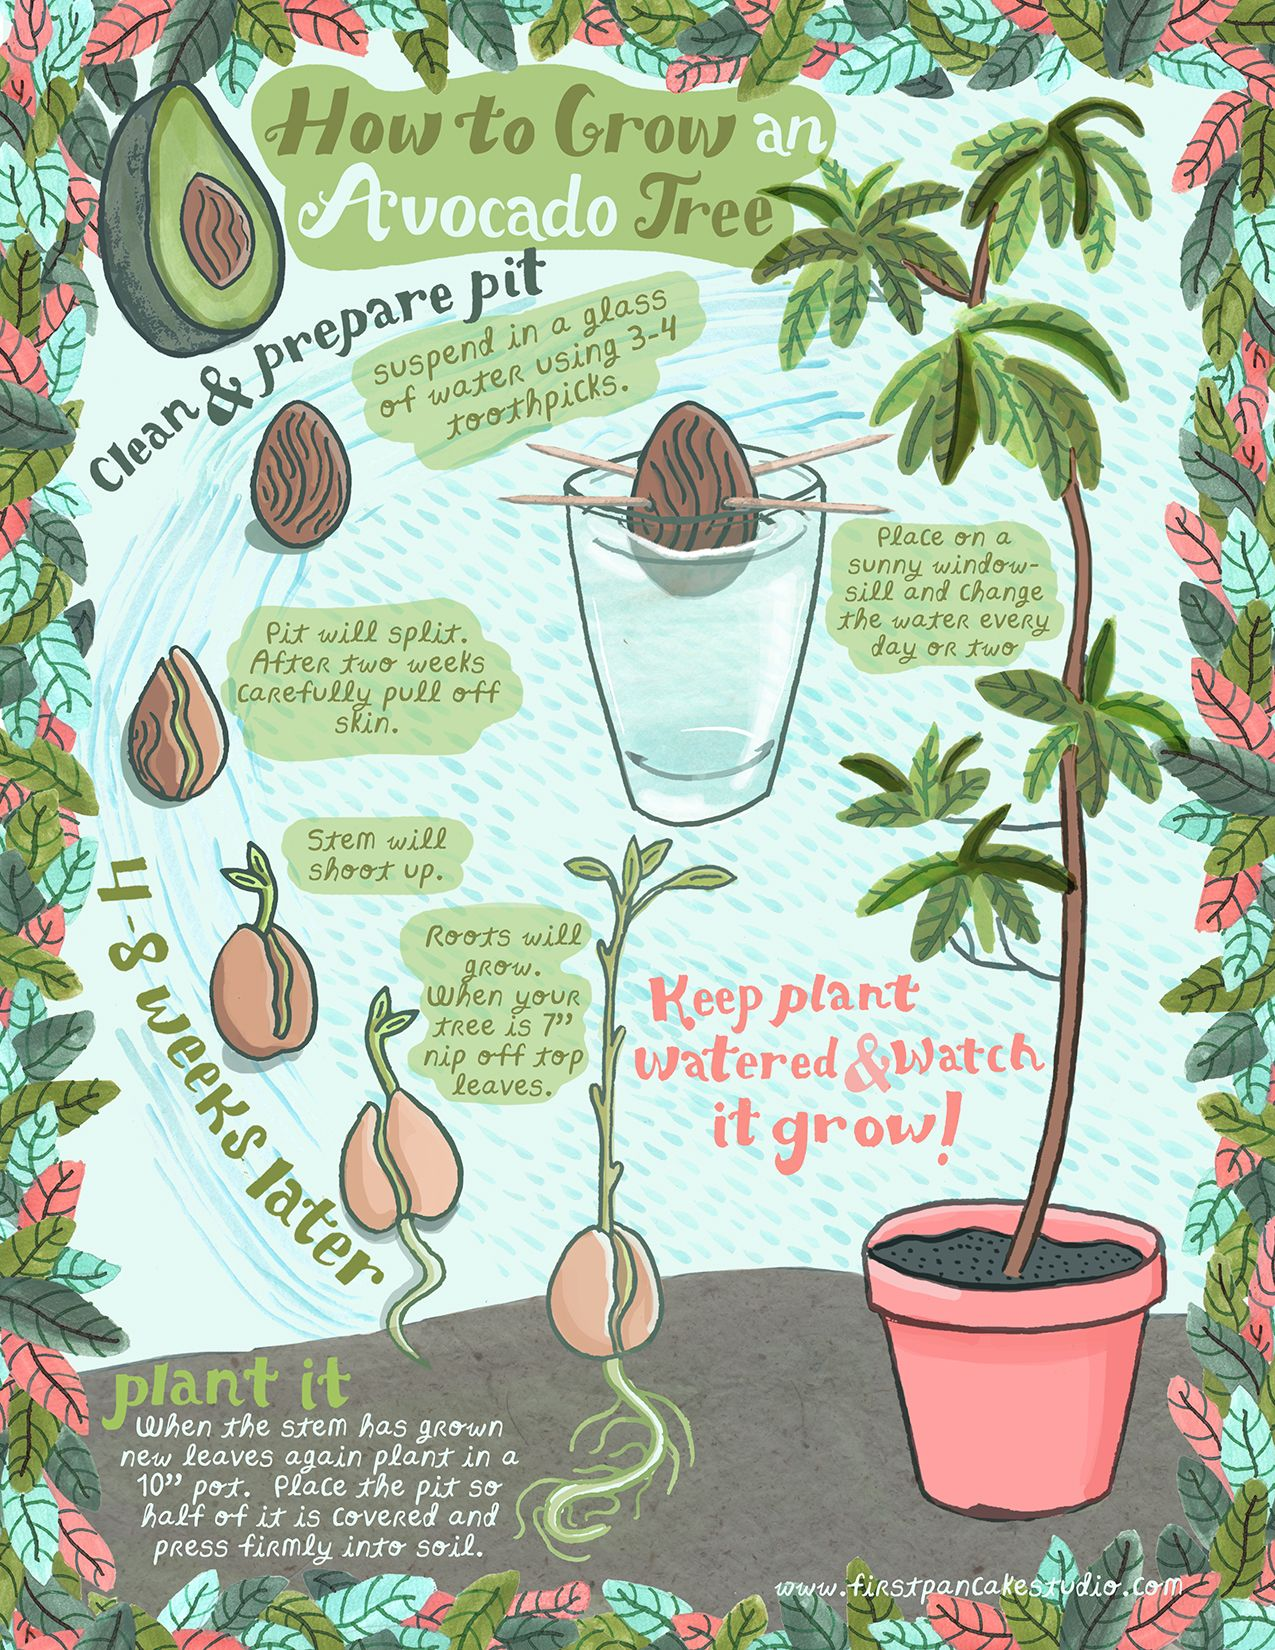 How To Grow An Avocado Tree Plants Avocado Plant Growing An Avocado Tree